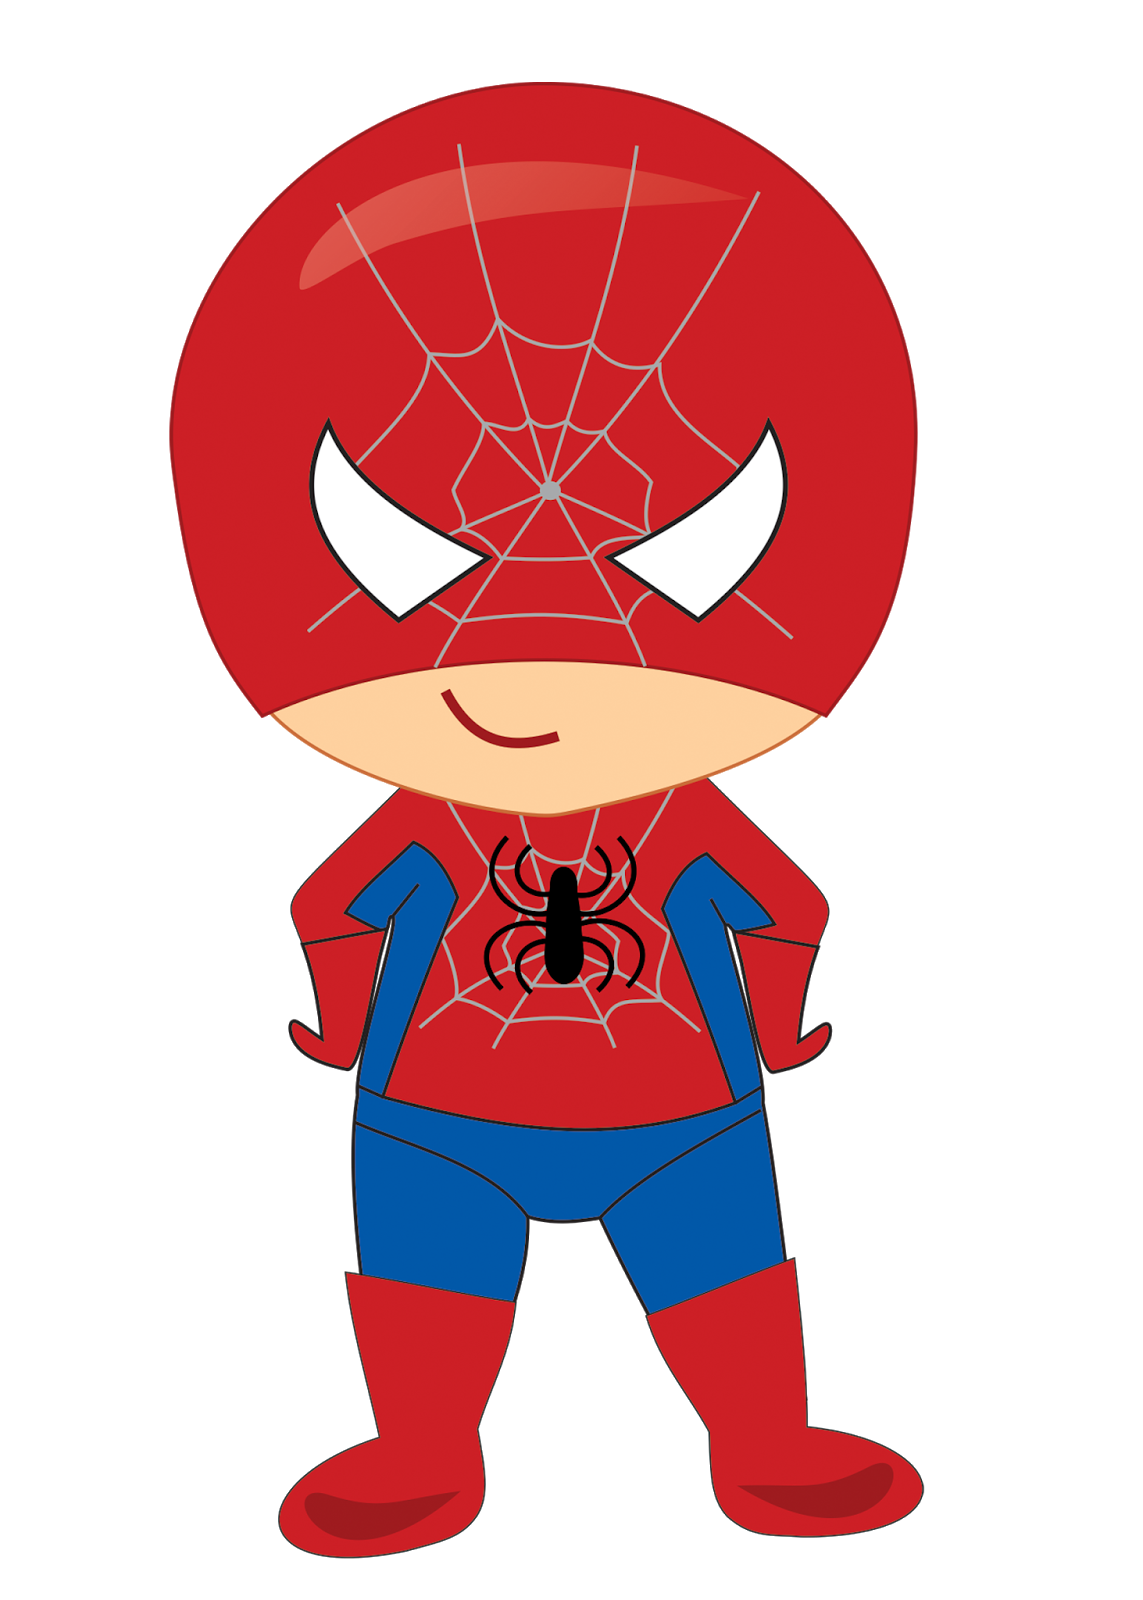 transparent download Baby niver pinterest. Superheroes clipart fight